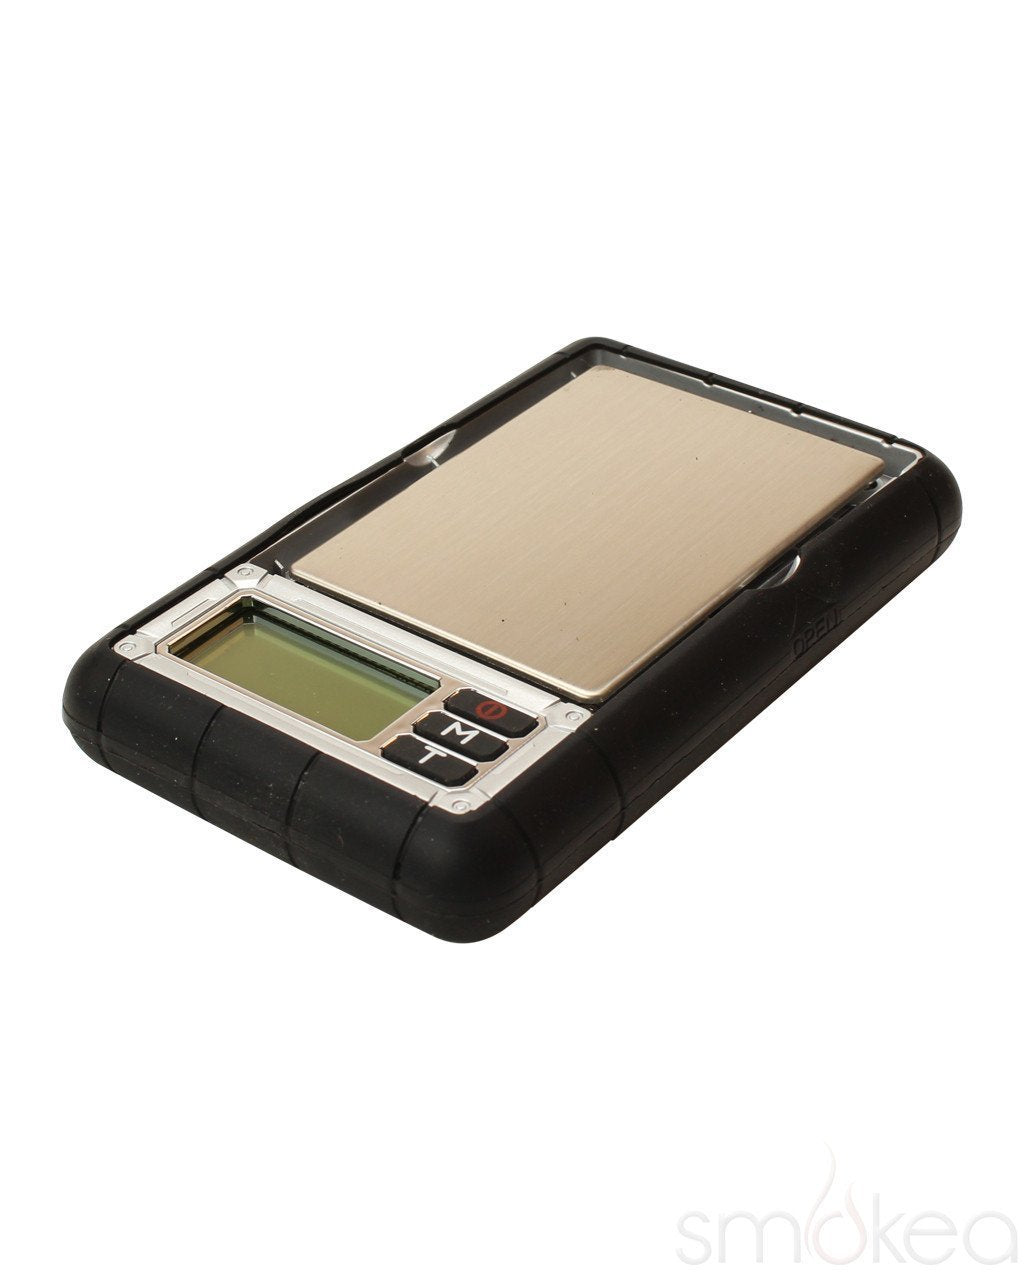 My Weigh DuraScale D2 660 Digital Scale